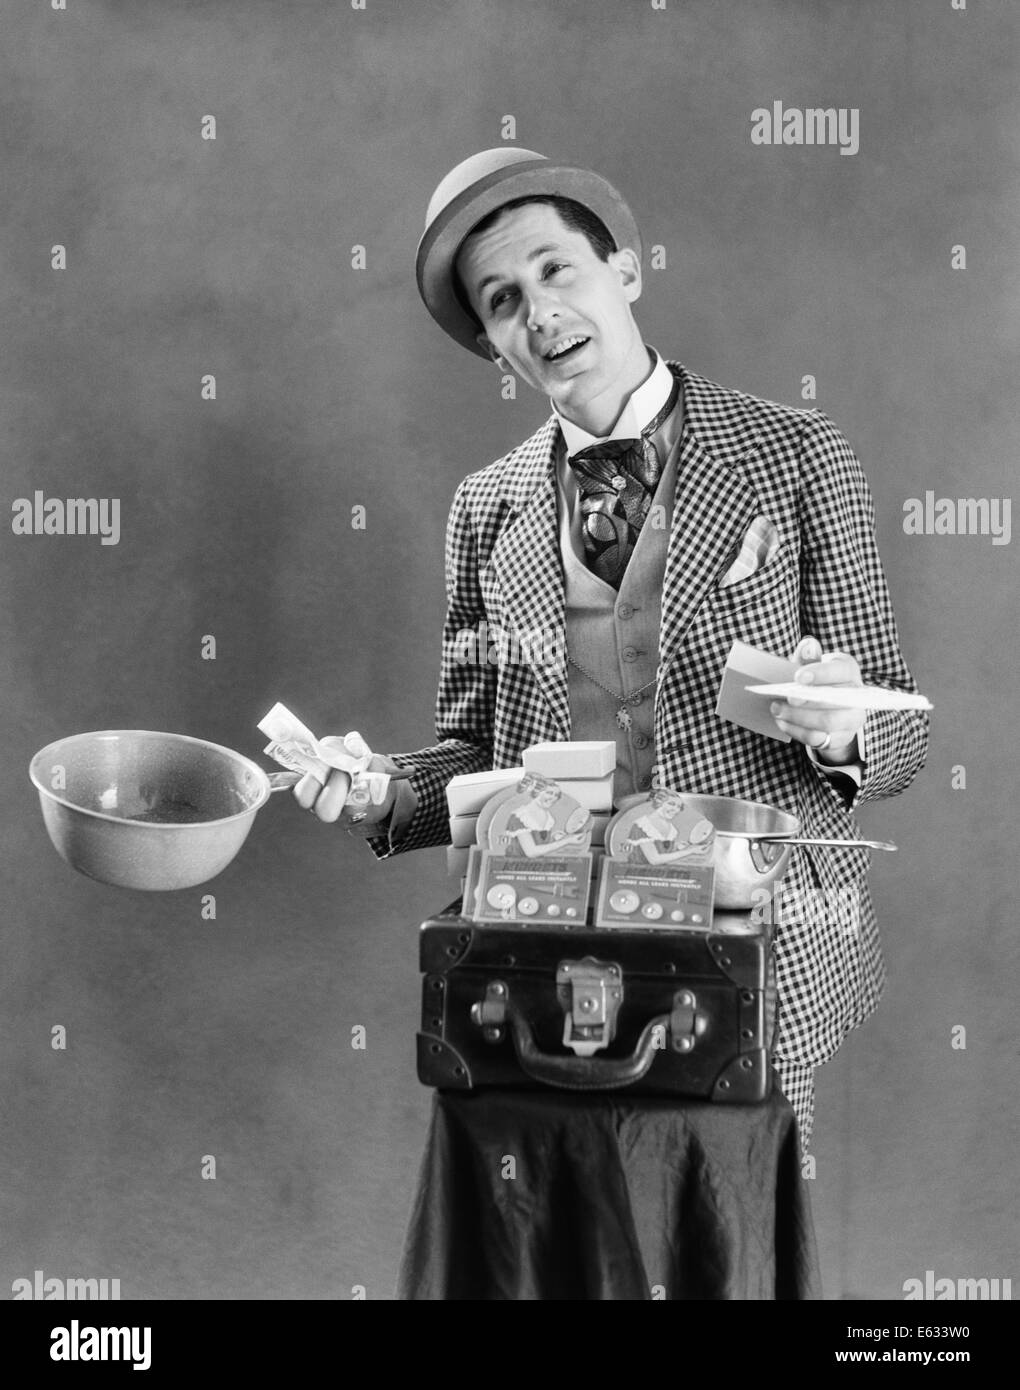 1910s 1920s CHARACTER CON MAN BARKER TRAVELING SALESMAN WEARING BOWLER HAT  LOUD VAUDEVILLE TYPE CLOTHING SELLING